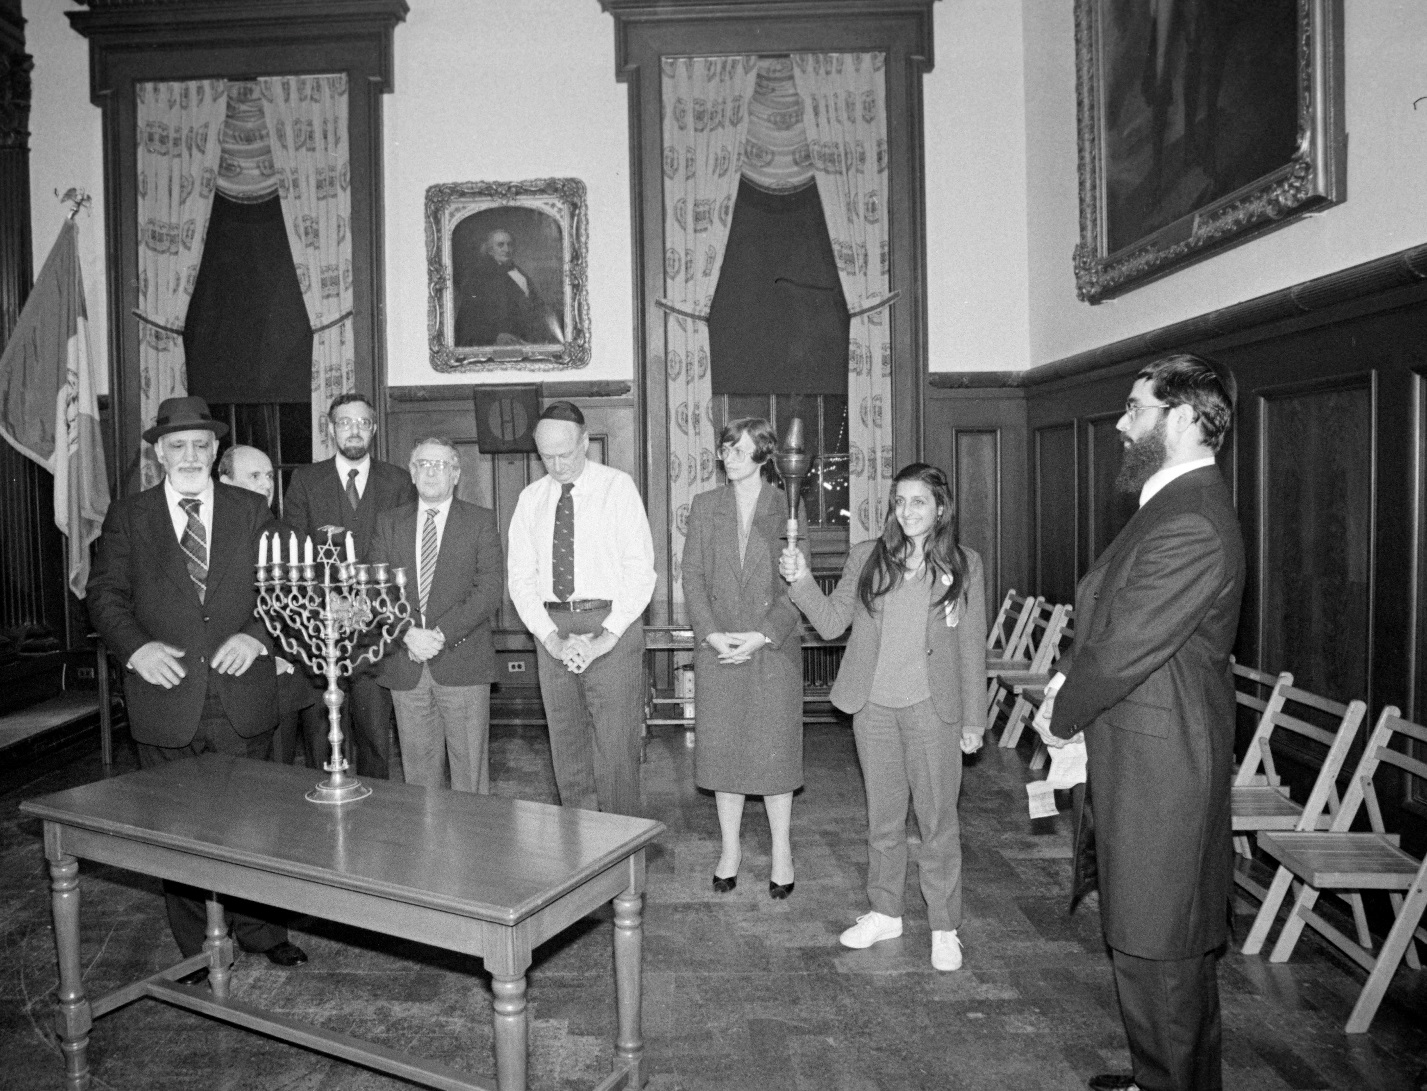 Mayor Koch participates in a Chanukah ceremony in the City Council Chambers on December 13, 1982. Mayor Koch Collection, NYC Municipal Archives.